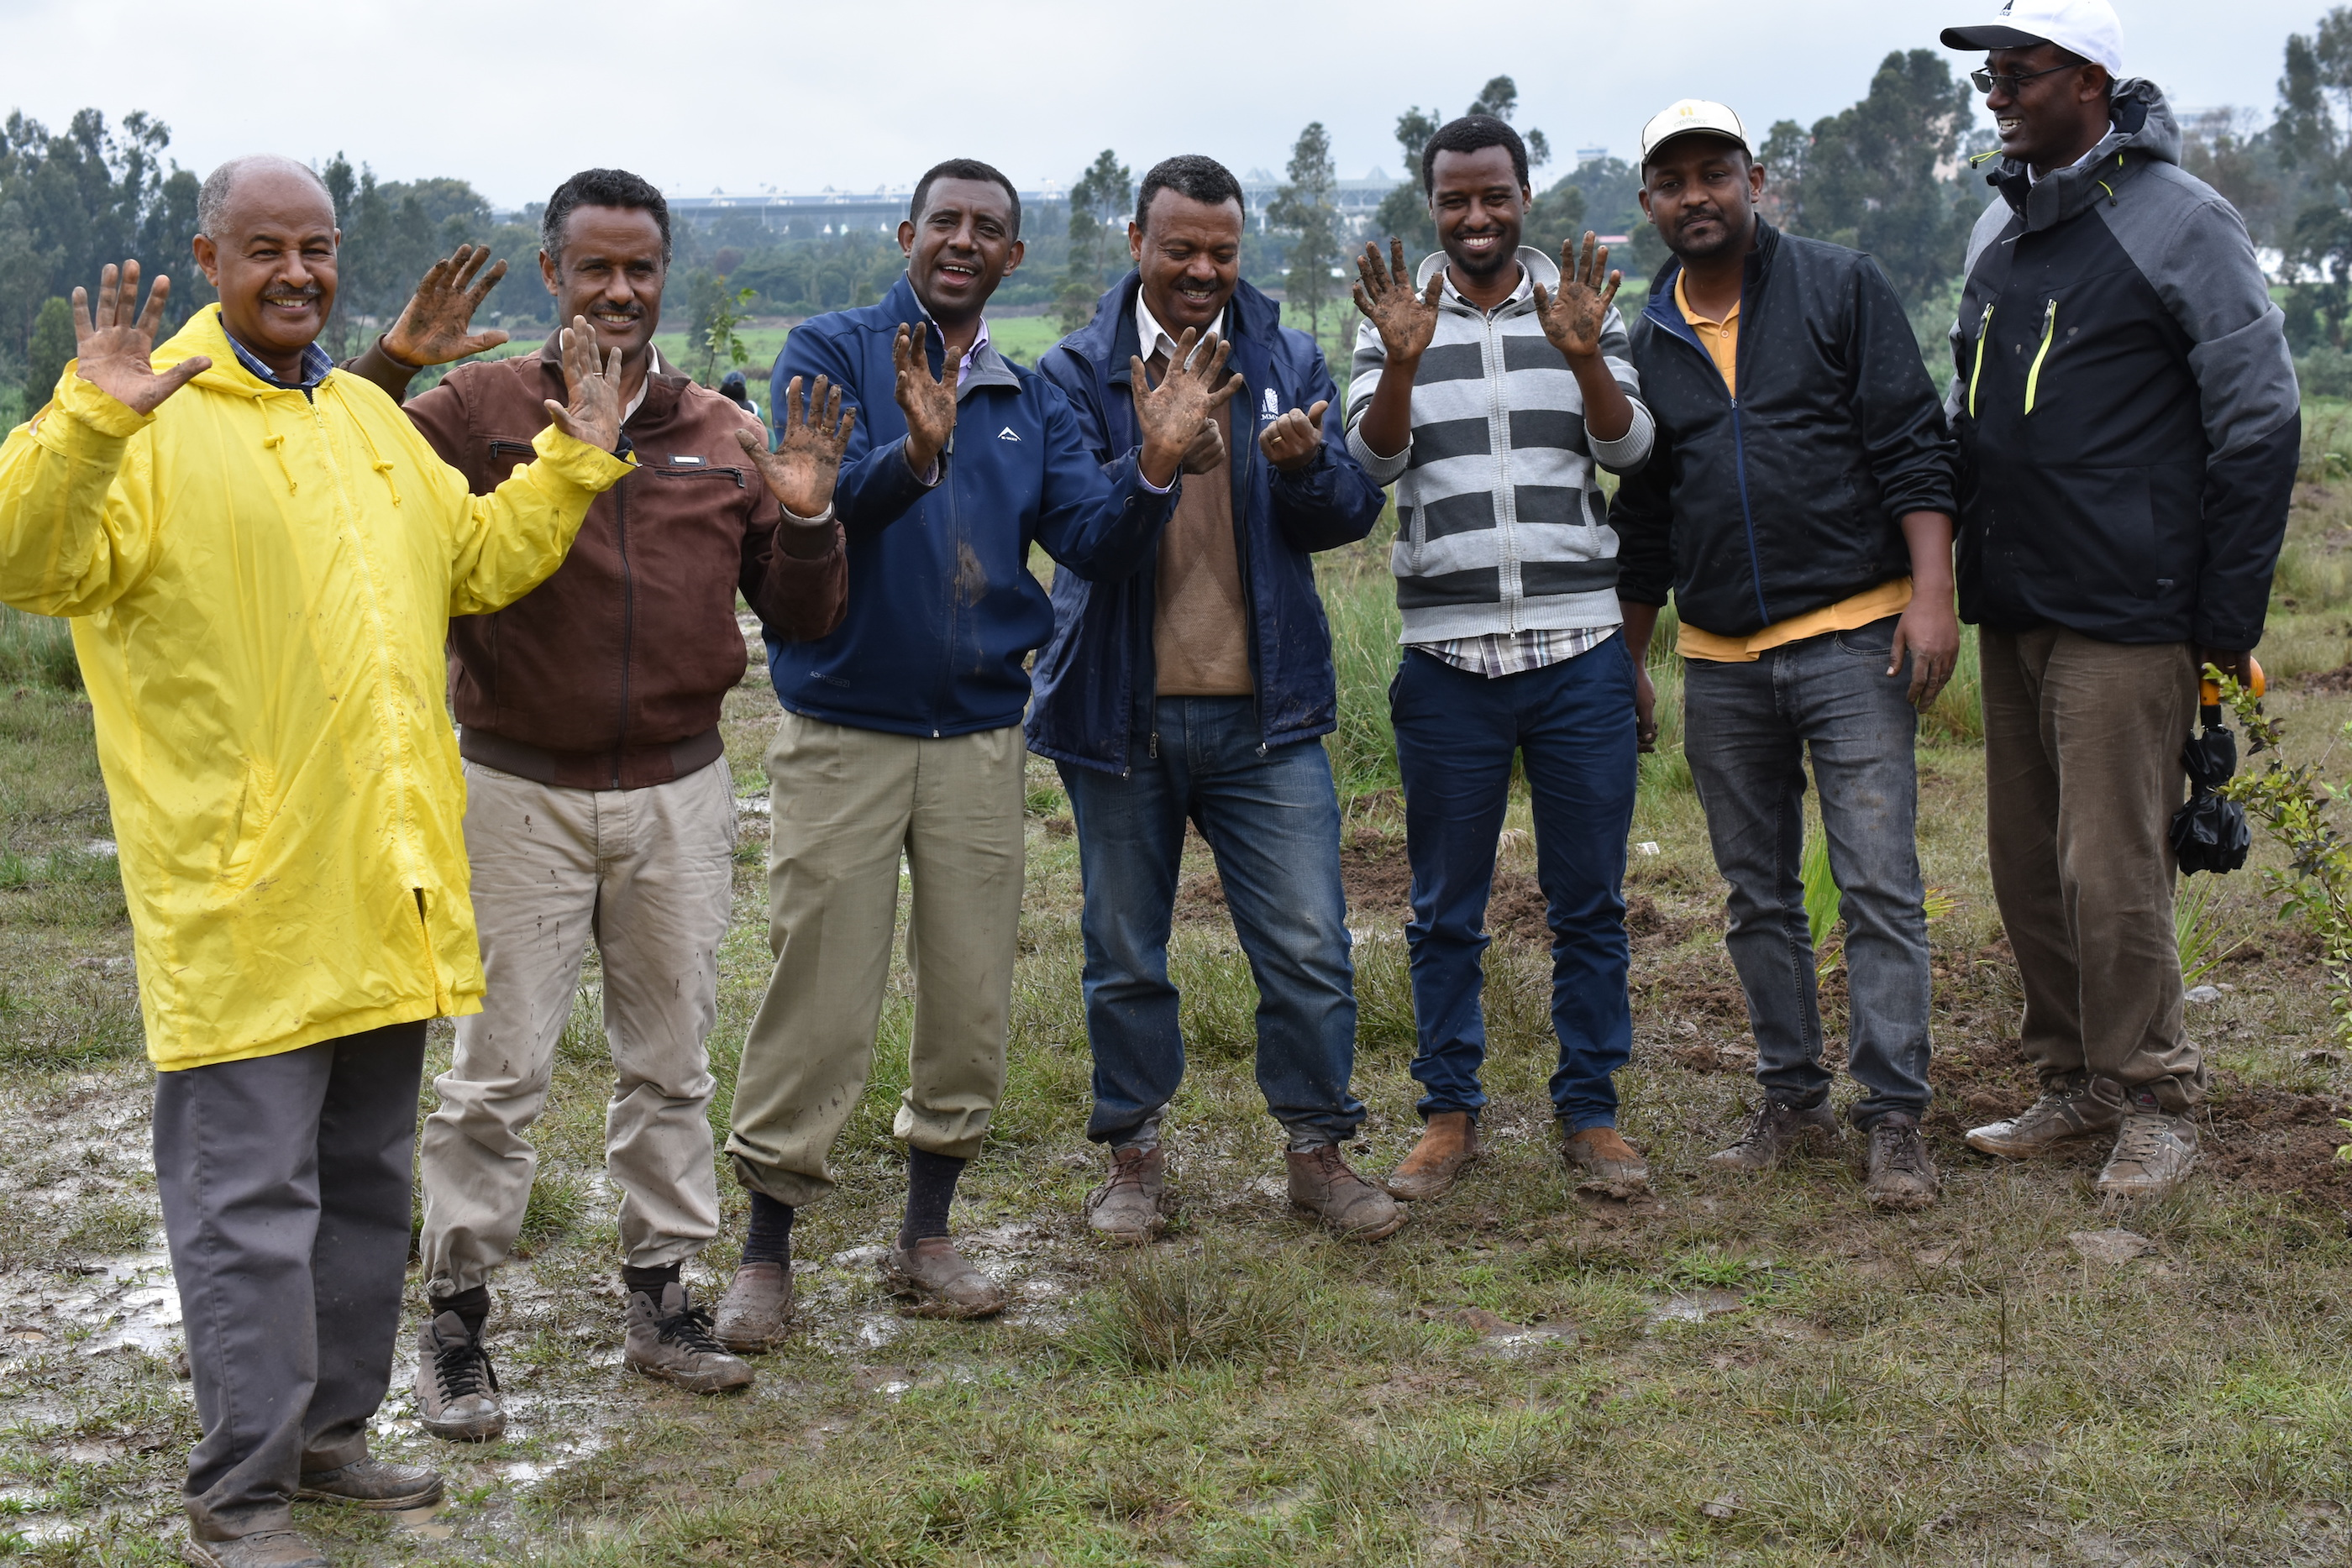 CIMMYT staff show their hands full of dirt after planting tree seedlings in Bole subcity, near Addis Ababa's international airport. (Photo: CIMMYT)